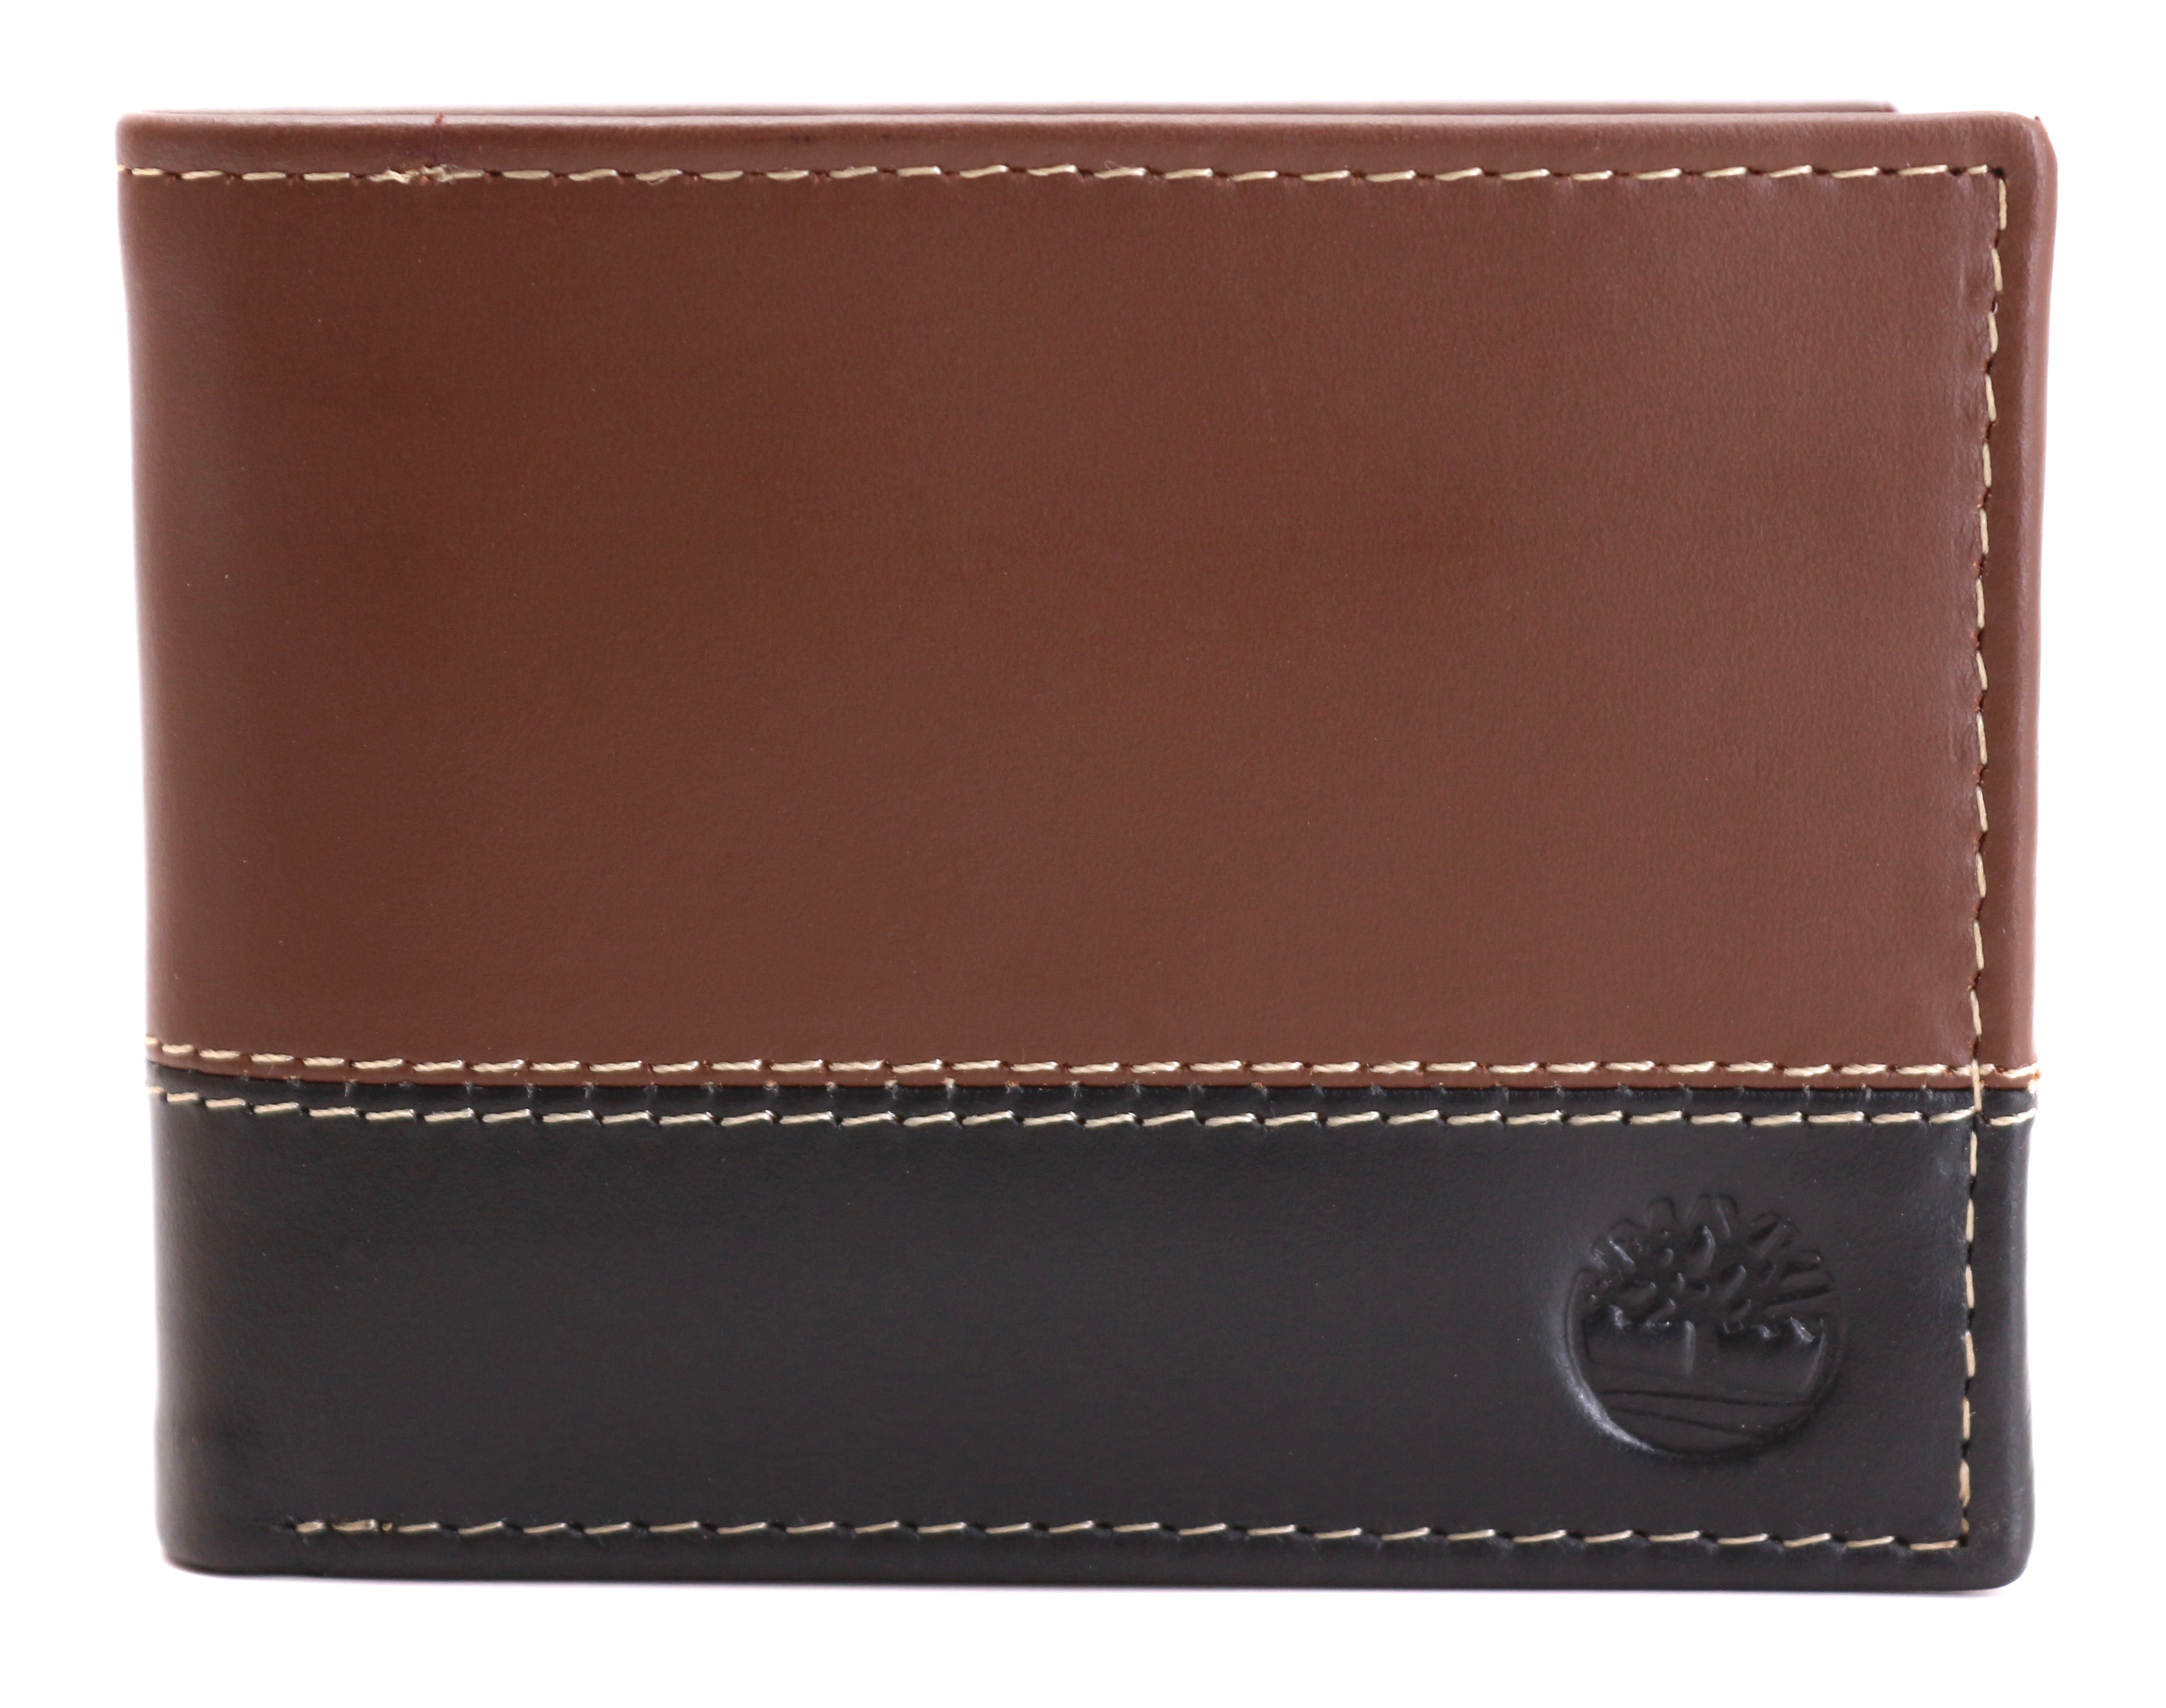 Timberland-Men-039-s-Genuine-Two-Tone-Leather-Credit-Card-Billfold-Commuter-Wallet thumbnail 29